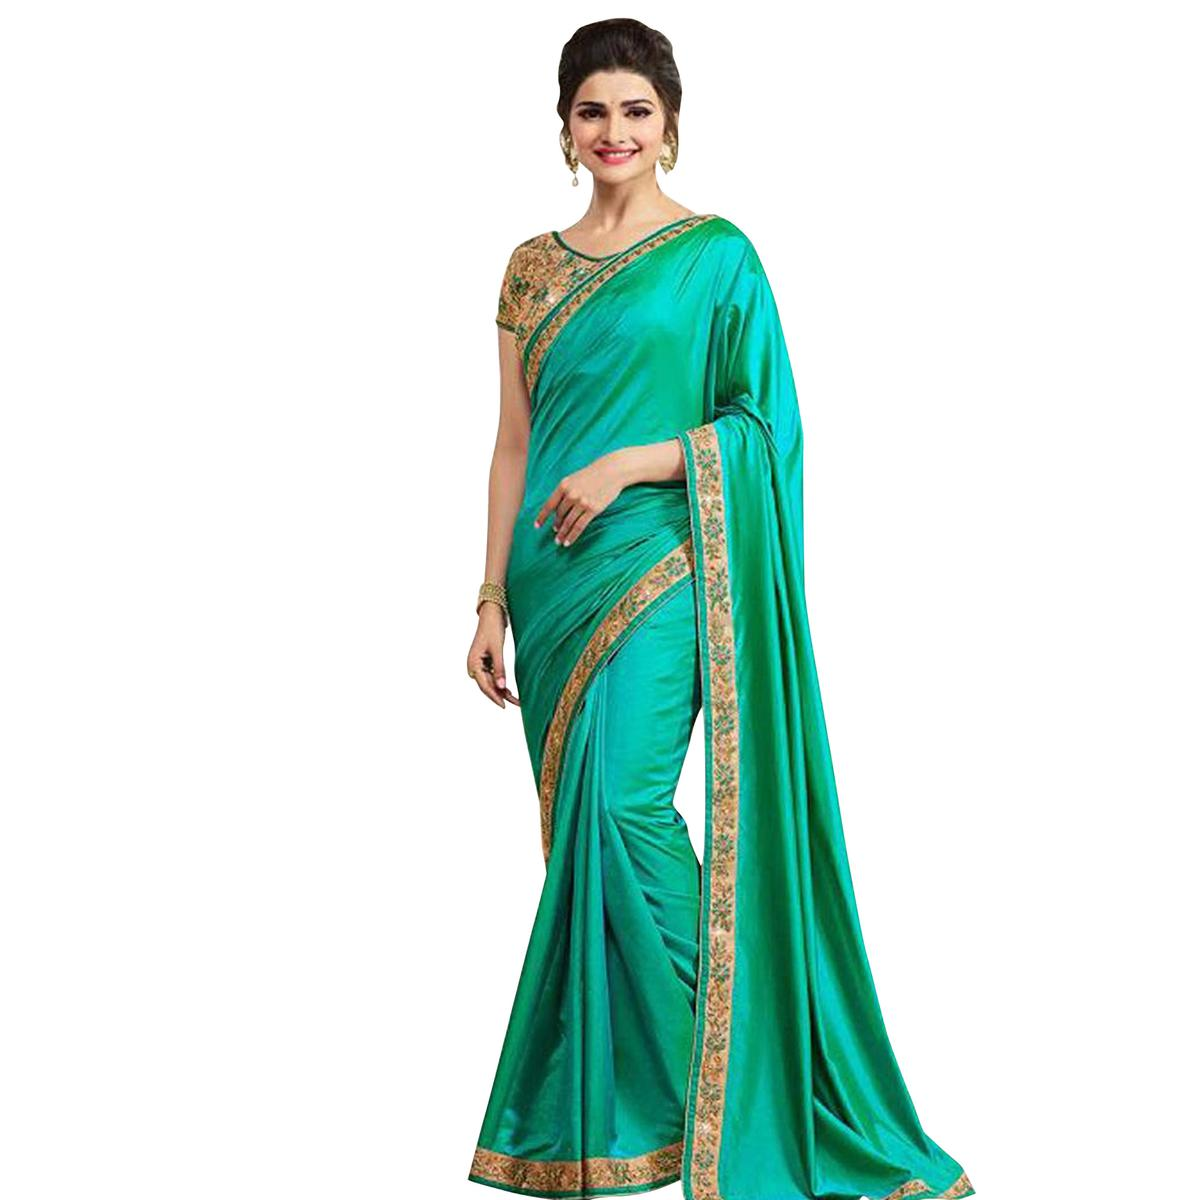 Groovy Turquoise Colored Party Wear Paper Silk Saree